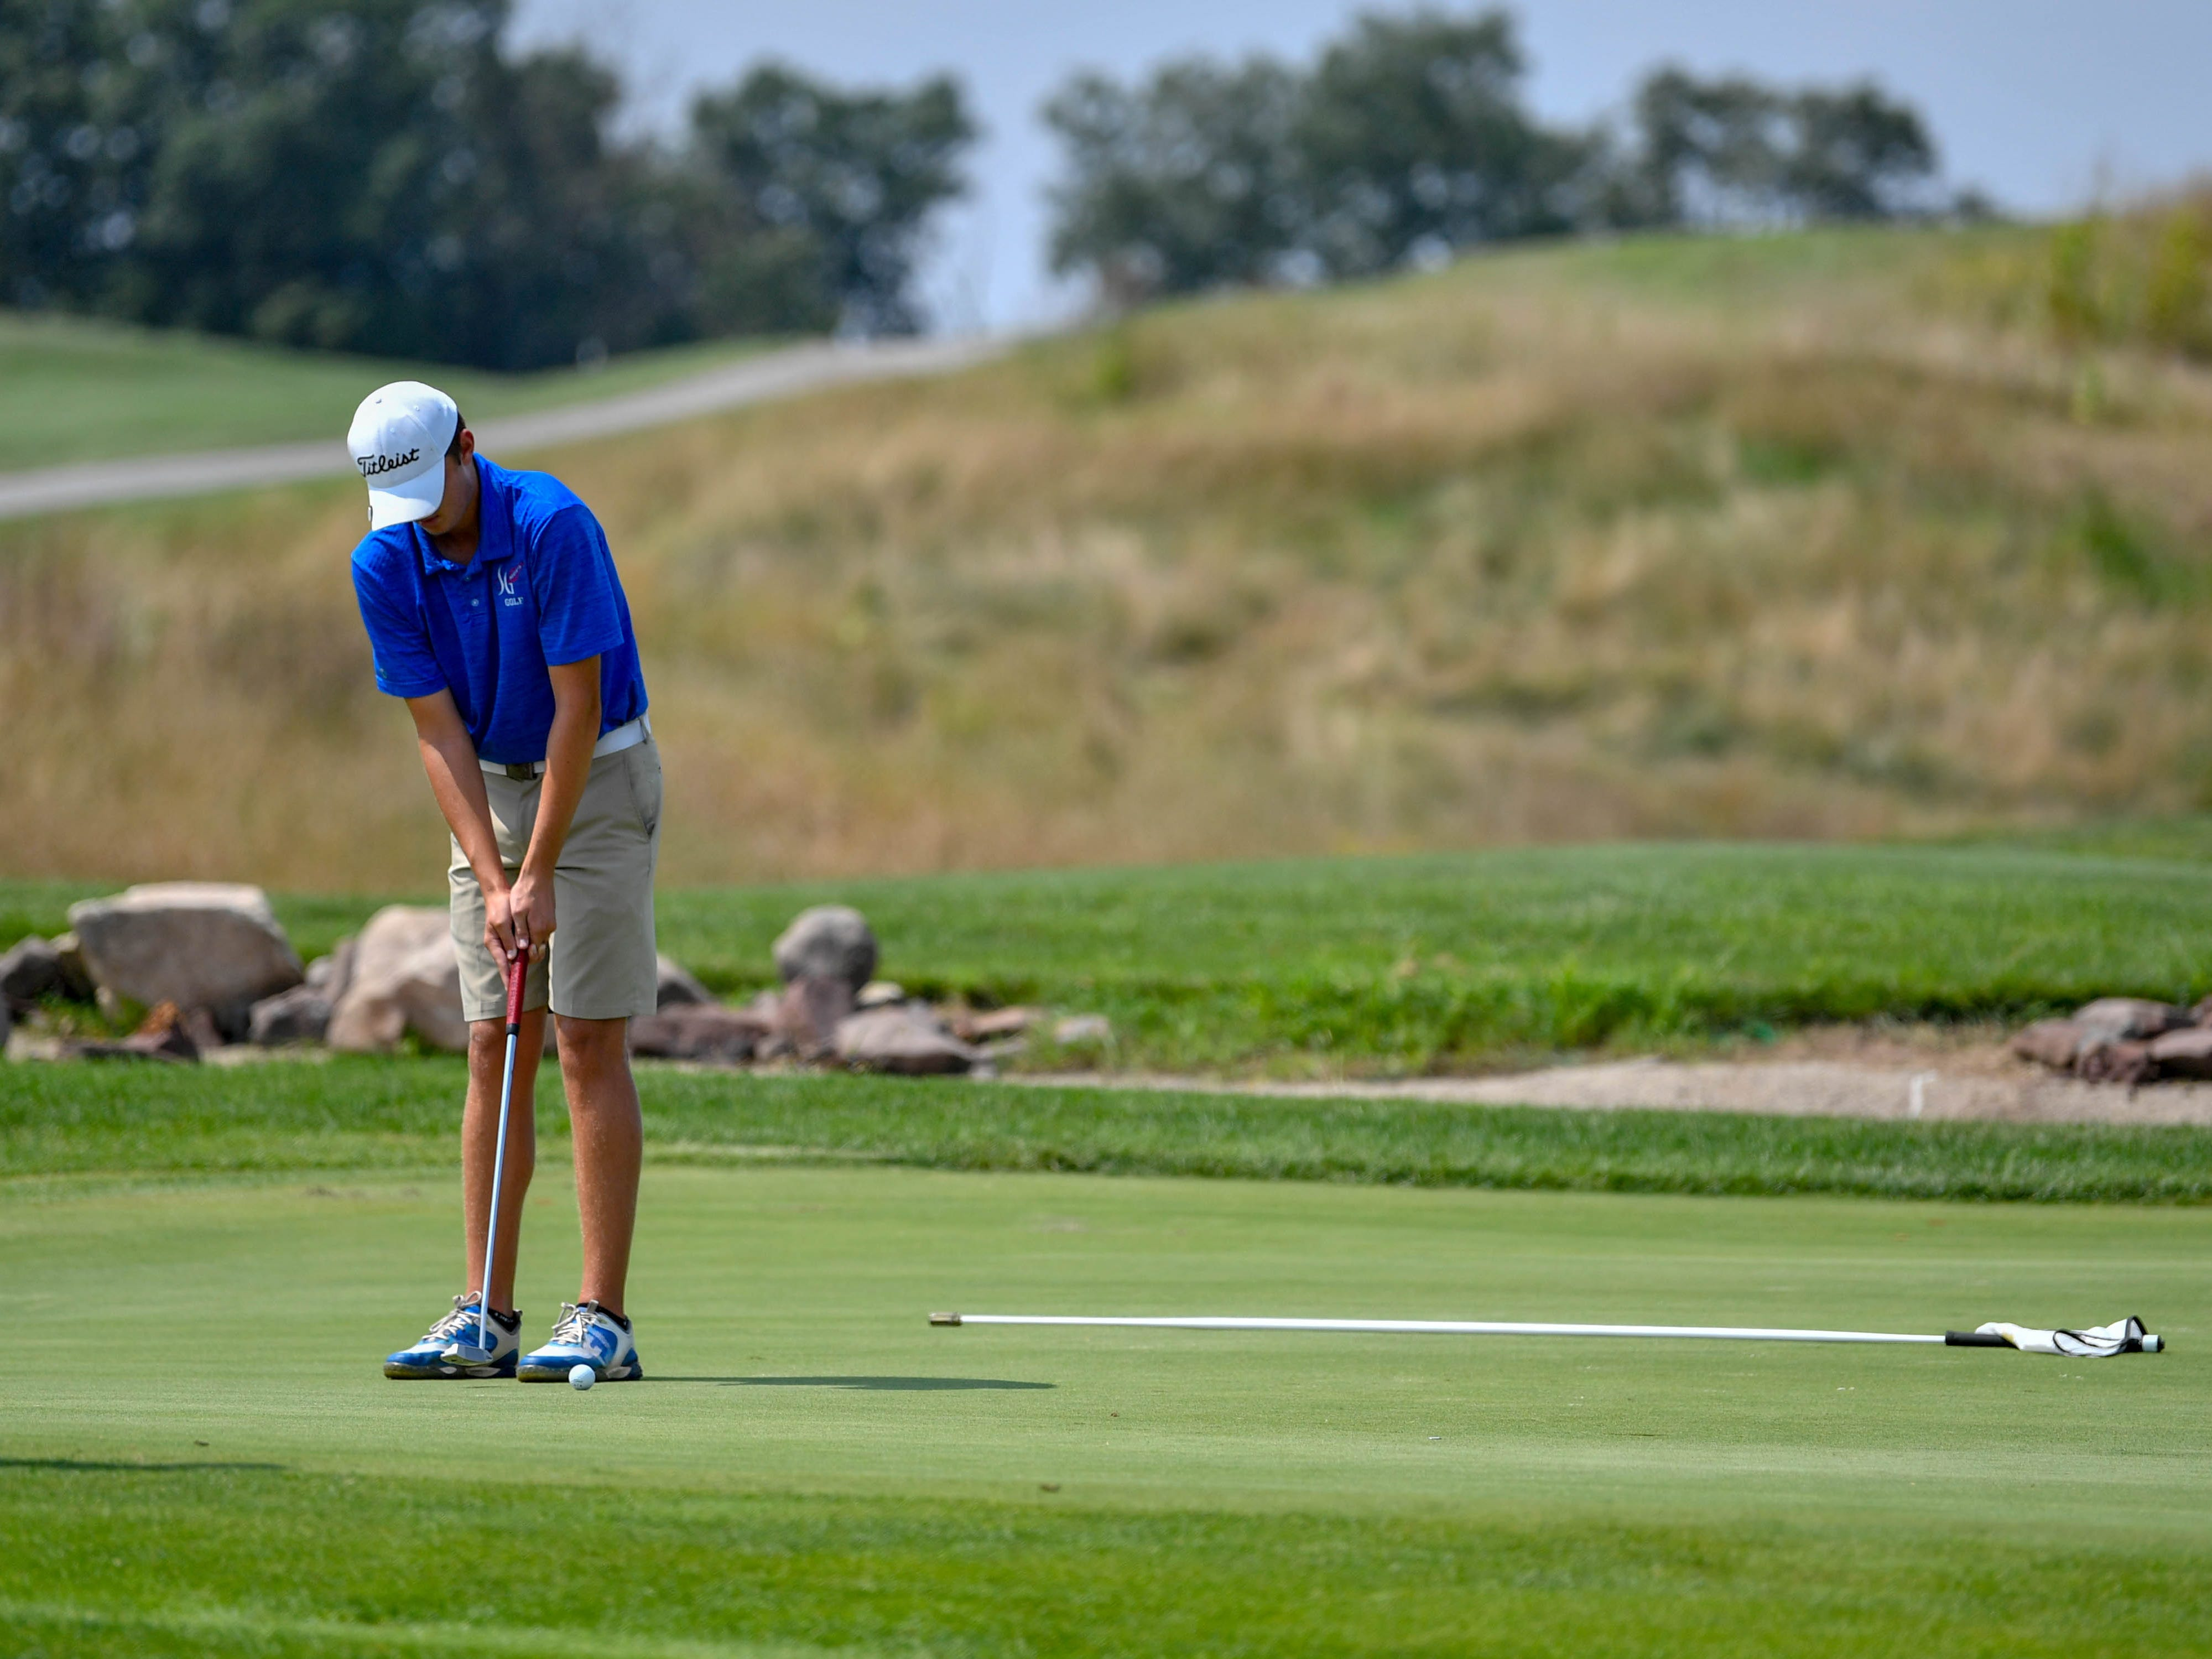 Spring Grove's Brandon Simmons lines up the putt during a Division I golf match at Royal Manchester Golf Links, Wednesday, Aug. 16, 2018.